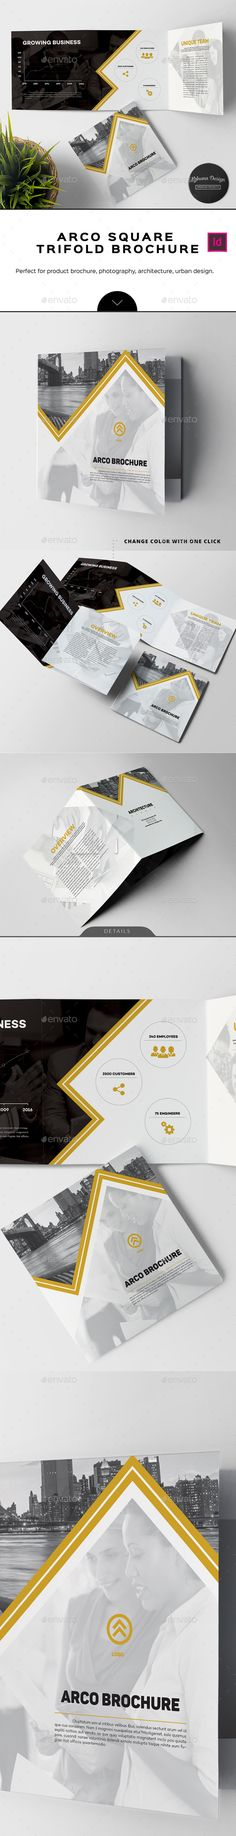 Arco Business Square Trifold Brochure Template InDesign INDD. Download here: http://graphicriver.net/item/arco-business-square-trifold-brochure/16667014?ref=ksioks